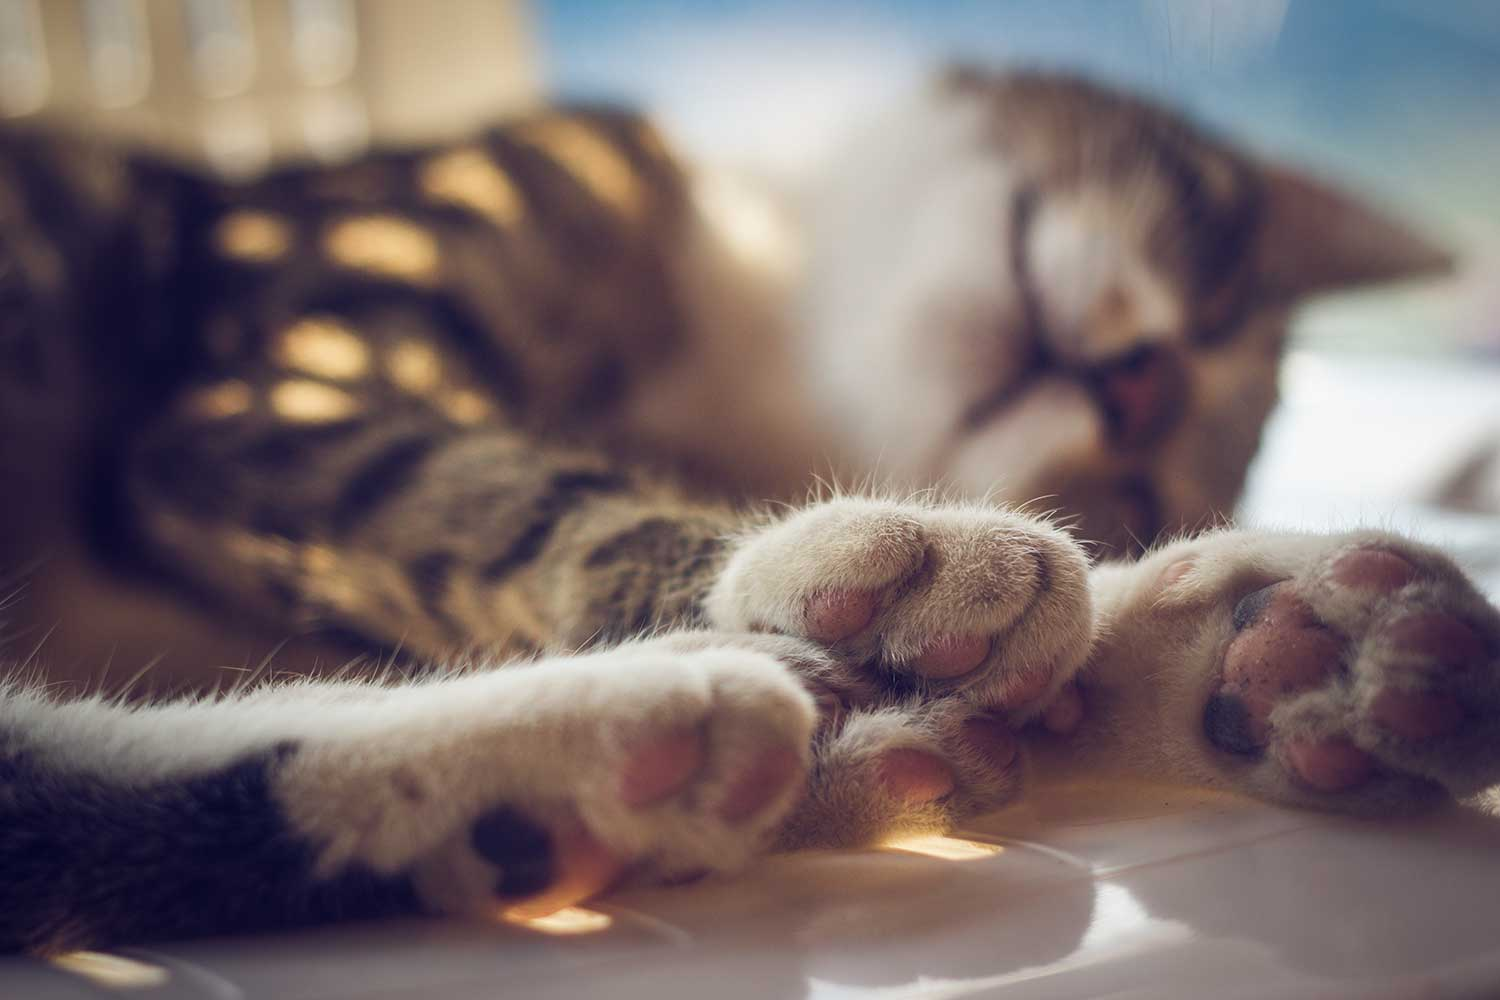 Paws of a sleeping domestic cat